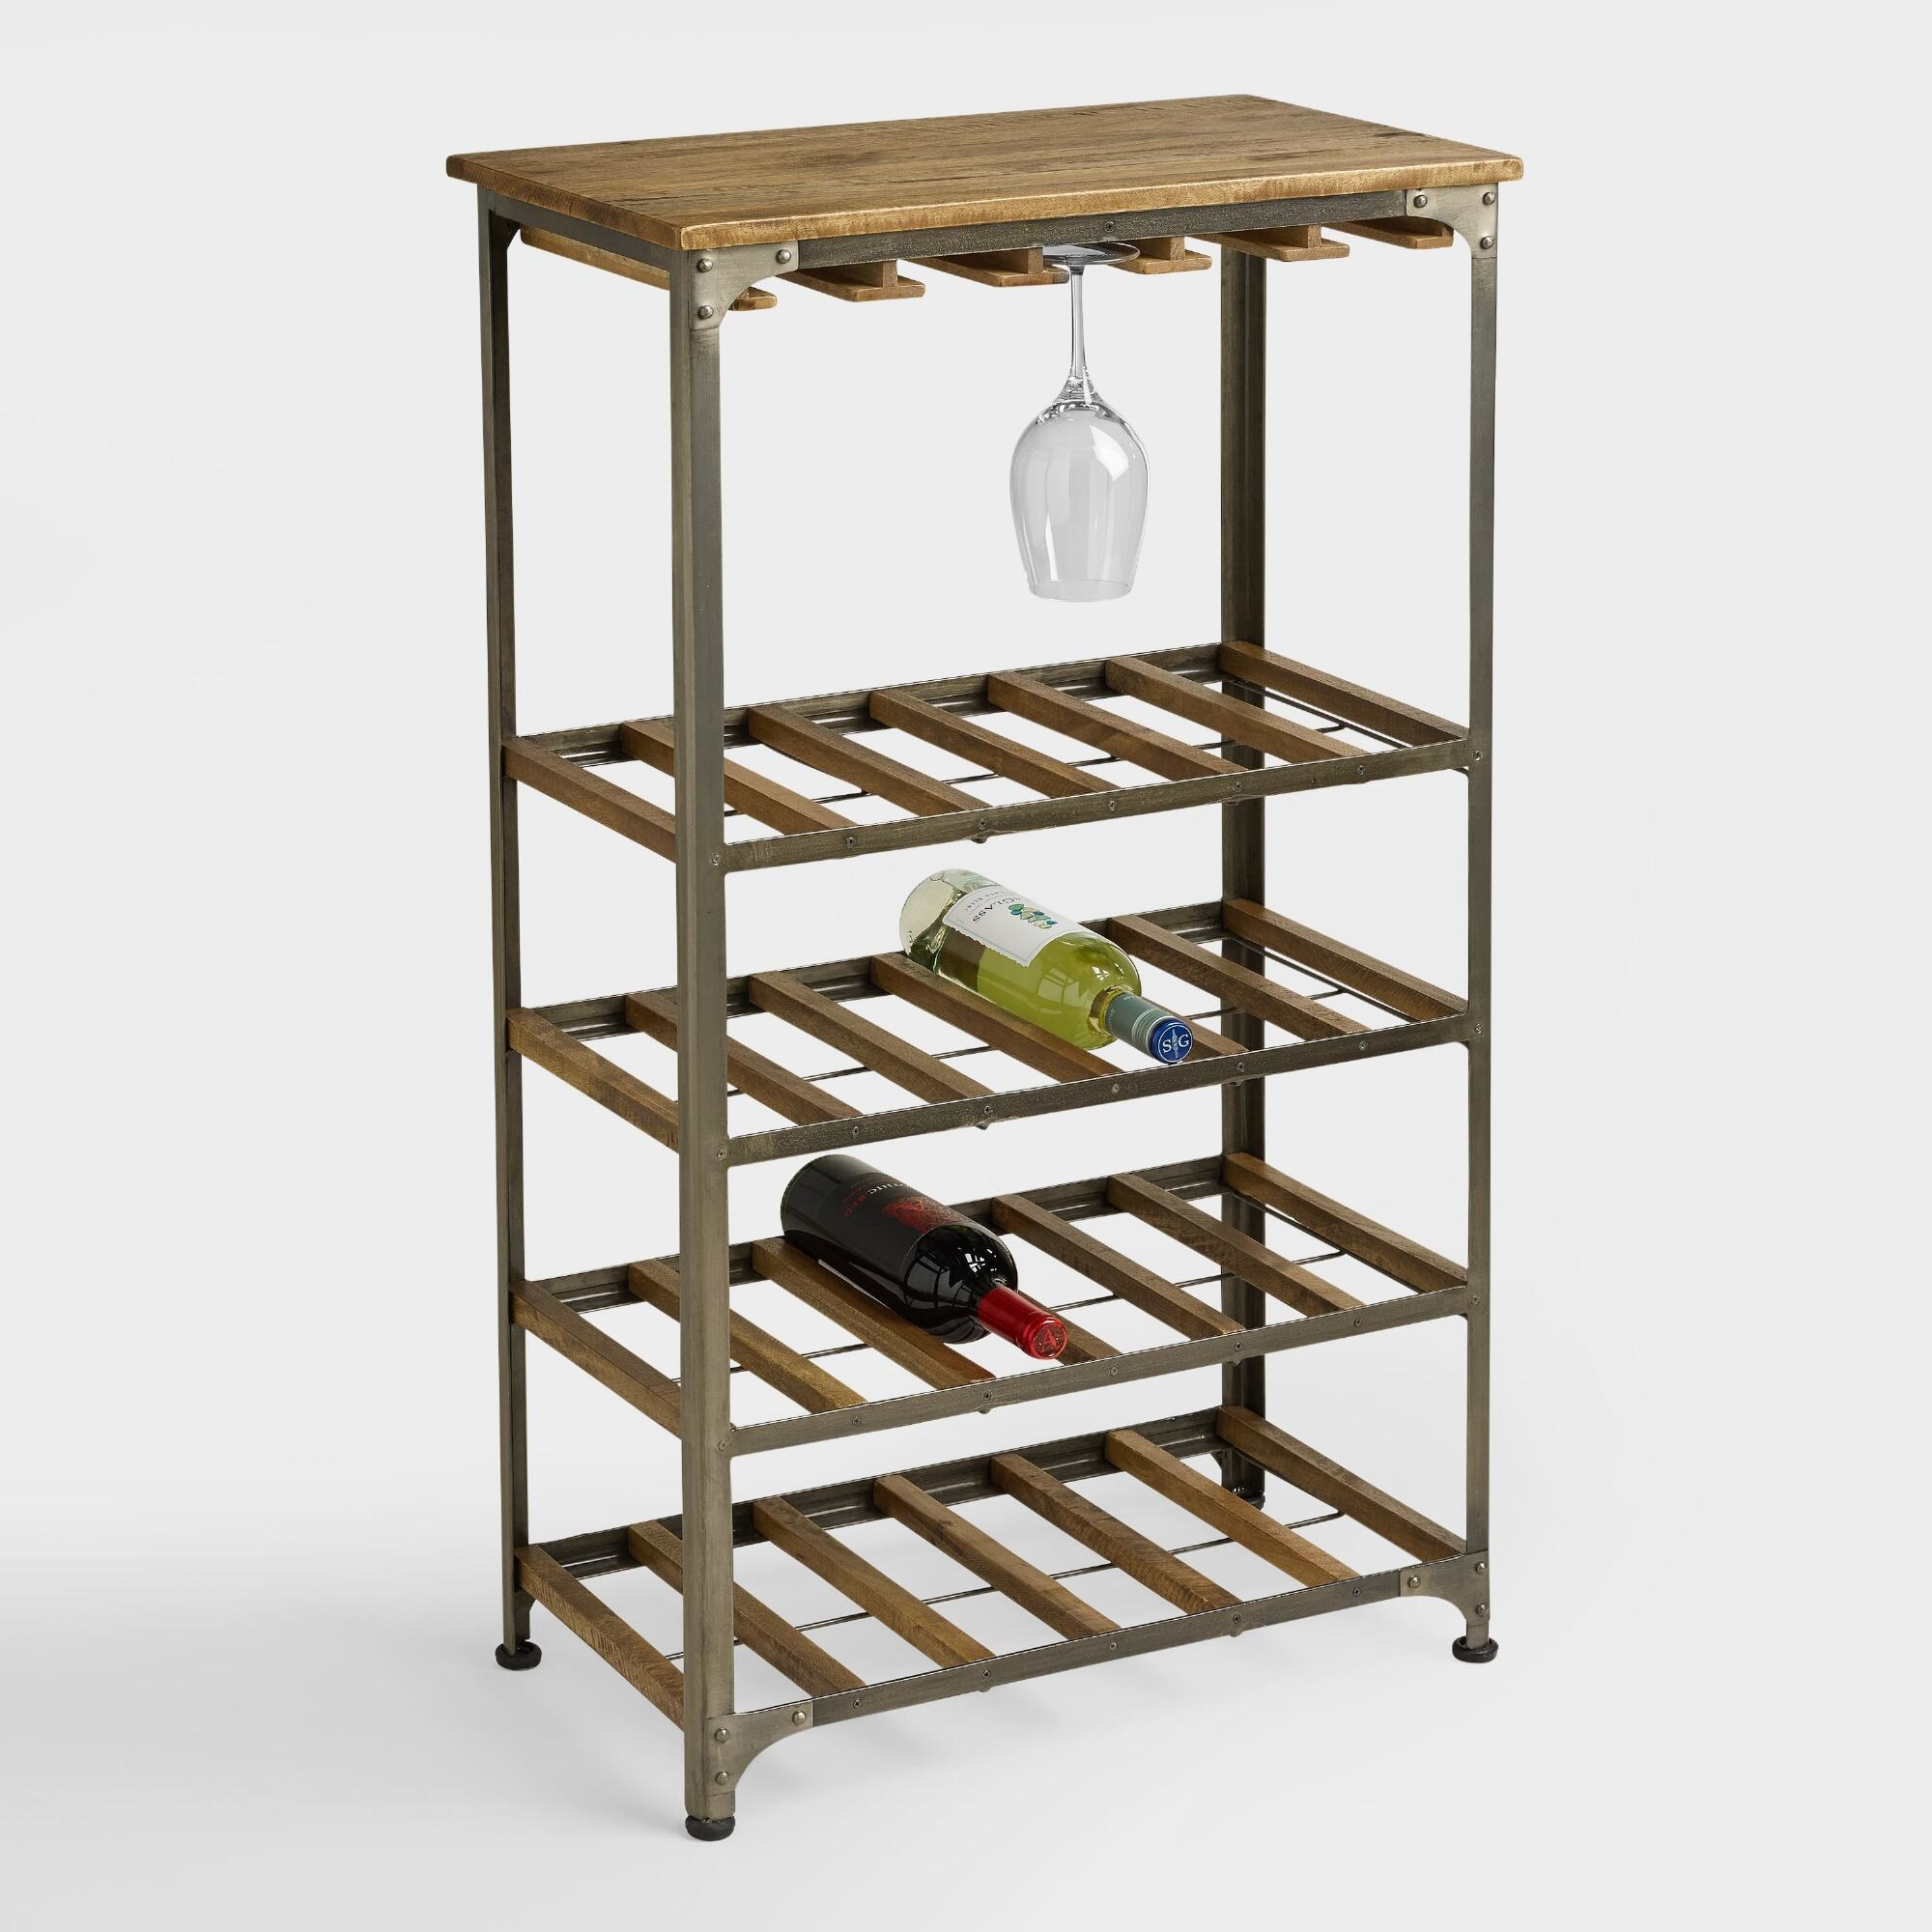 The rack holding wine bottles and a glass